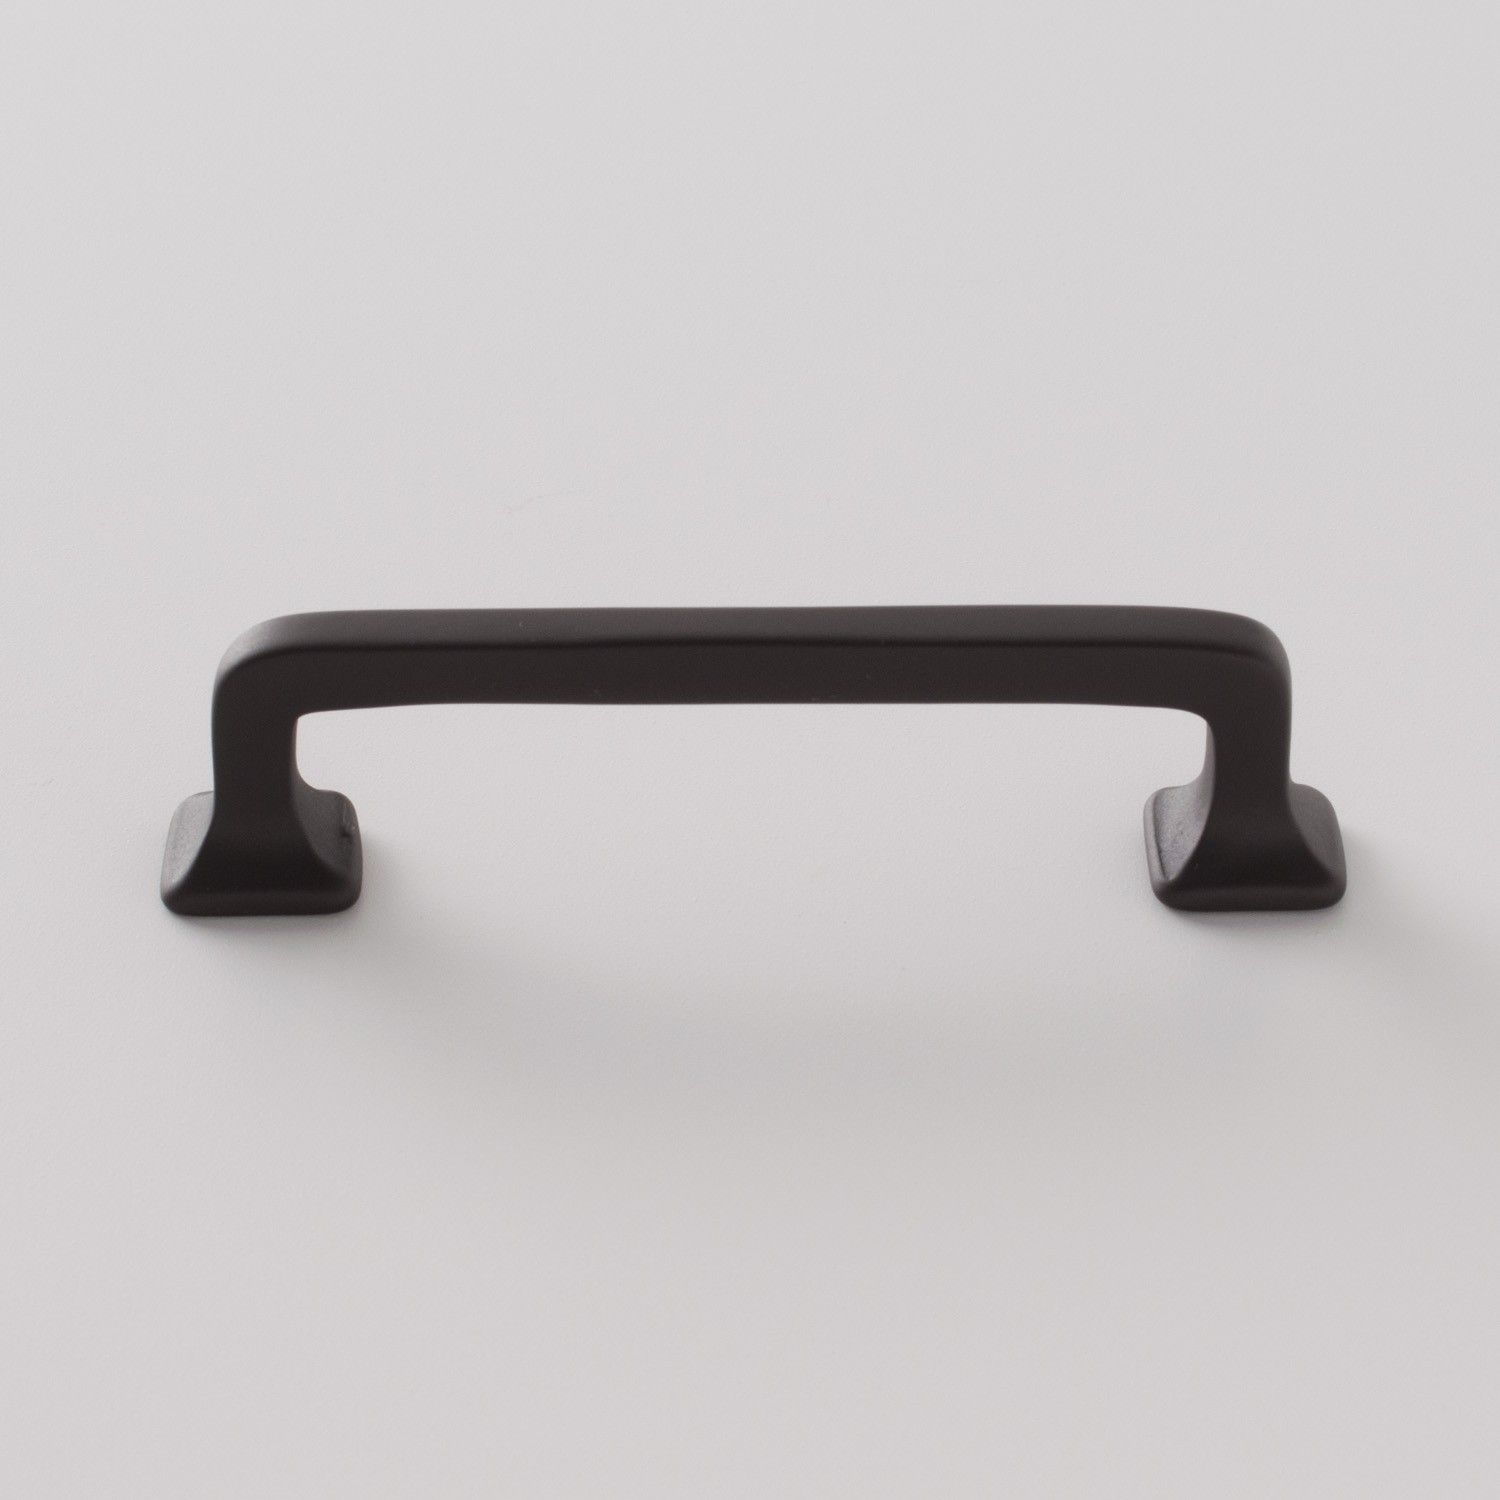 with backplate pull vb bale oval bronze hardware pulls drawer